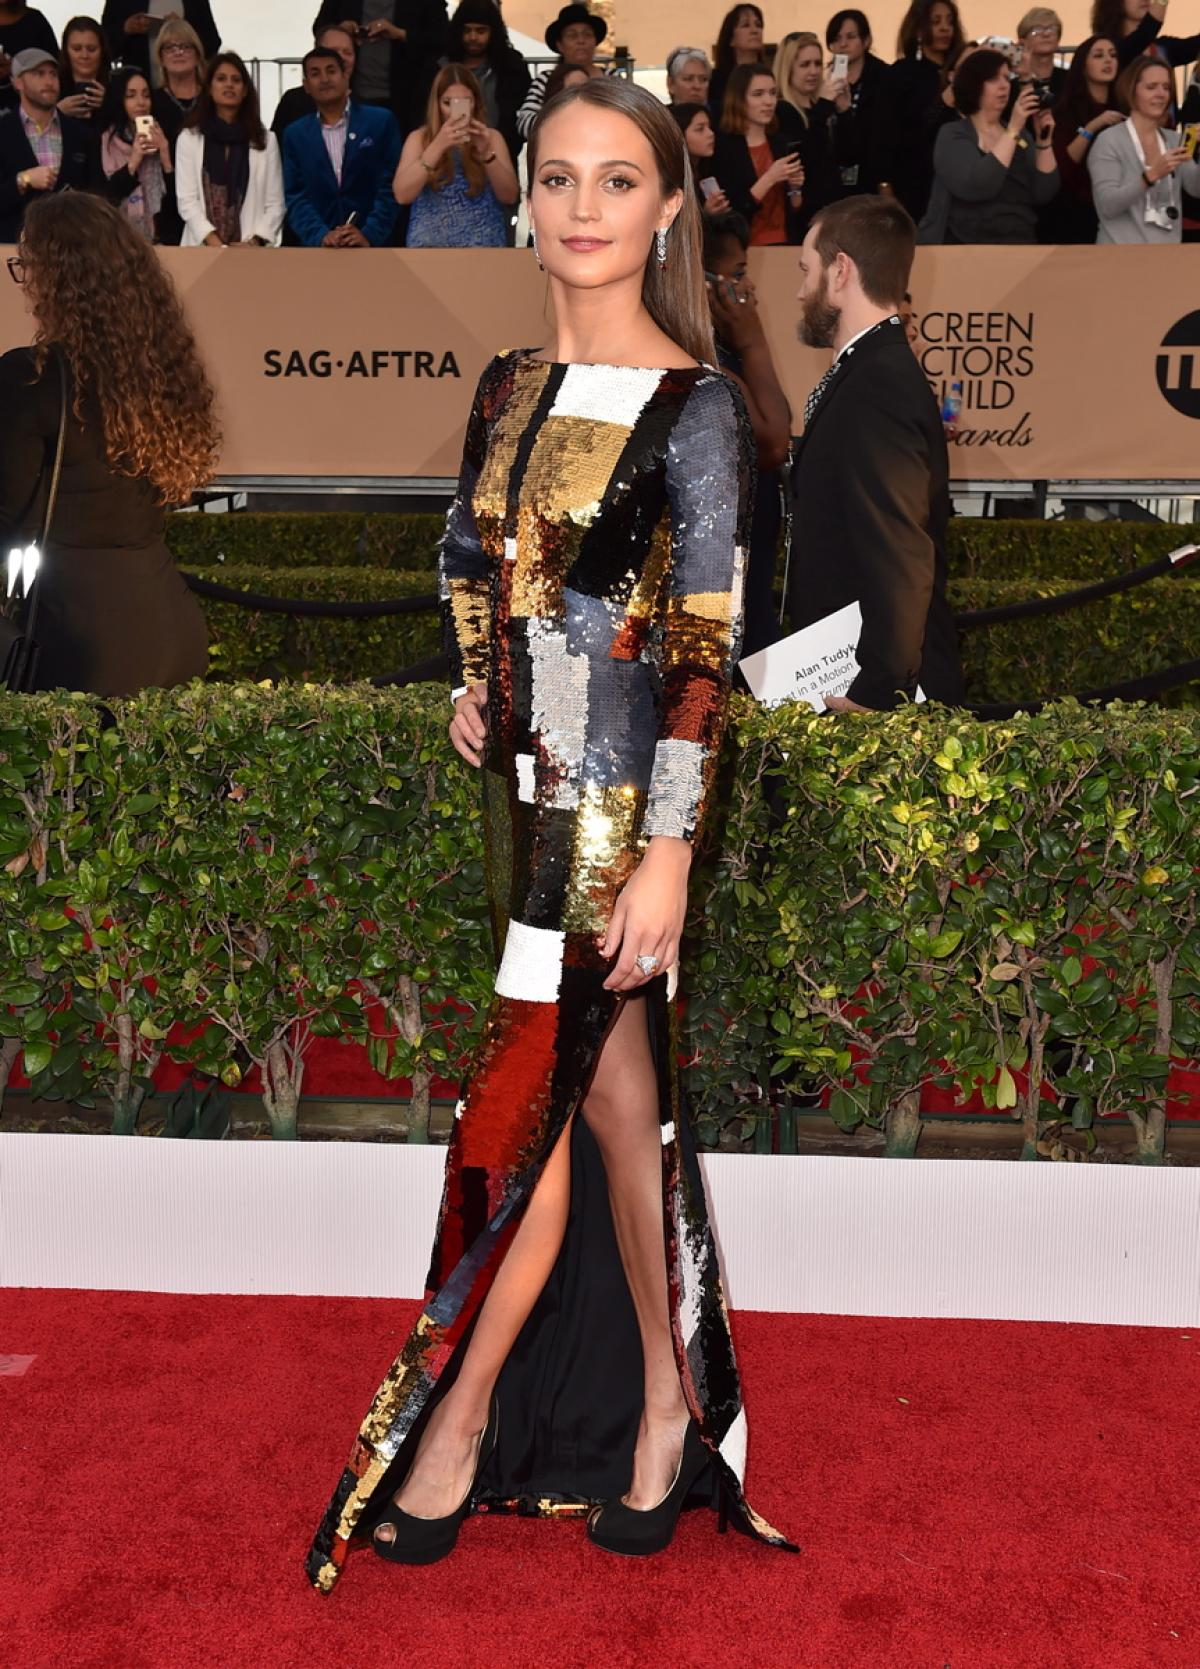 SAG-Awards-2016-Red-Carpet-alicia-vikander